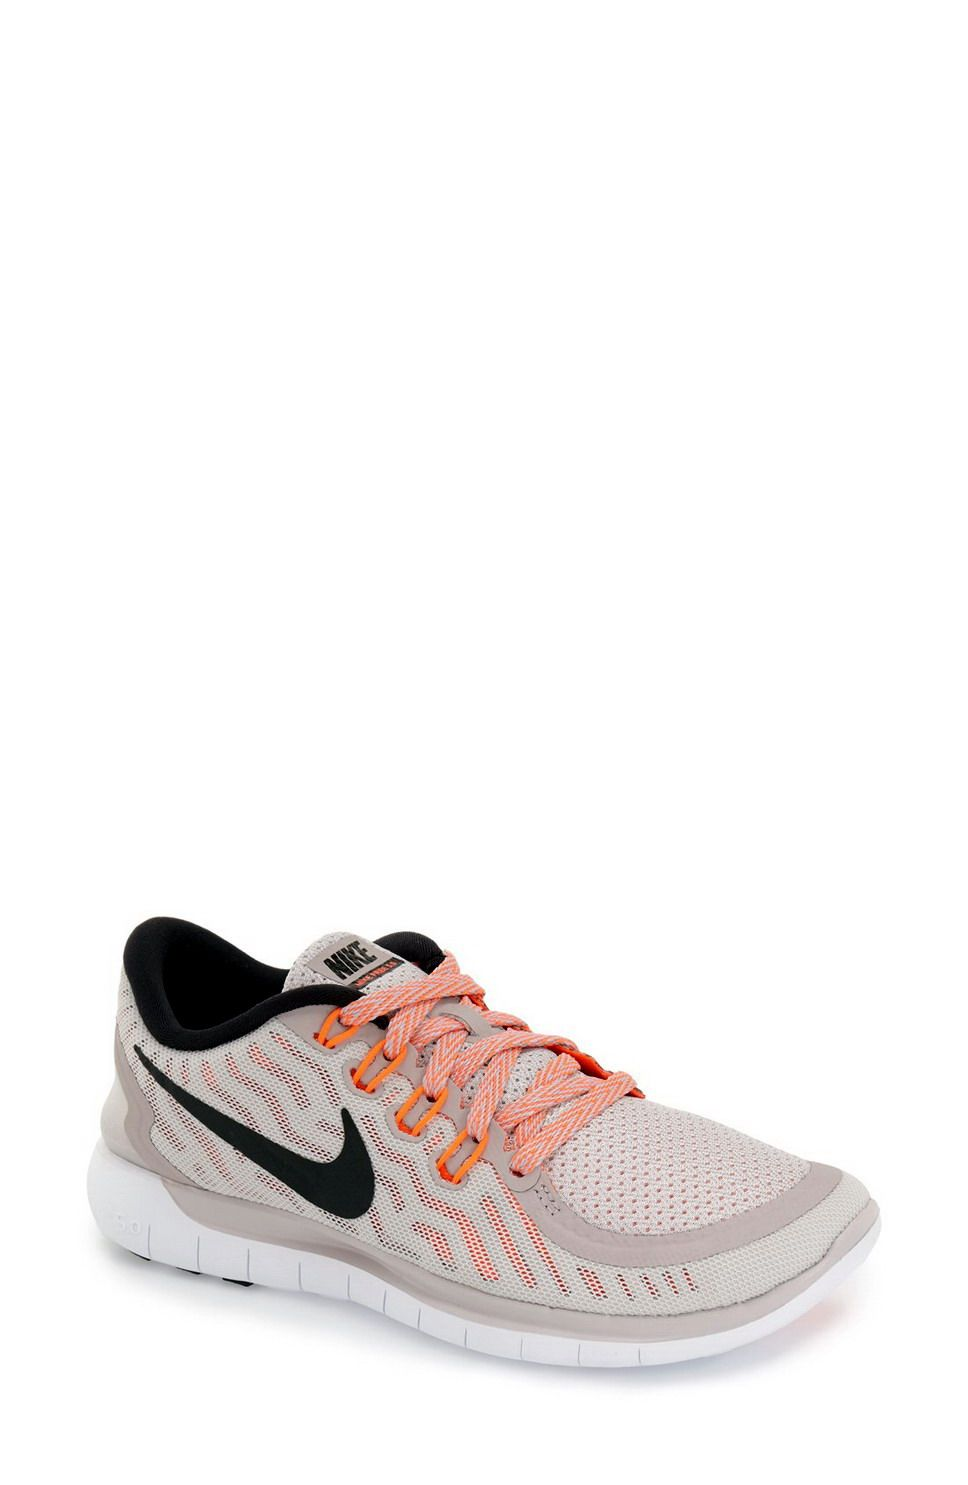 new product de61b 63a88 Love this sports Nike Shoes site!wow,it is so cool.Nike free shoes only  21  to get, Nike  Shoes. I m gonna ...